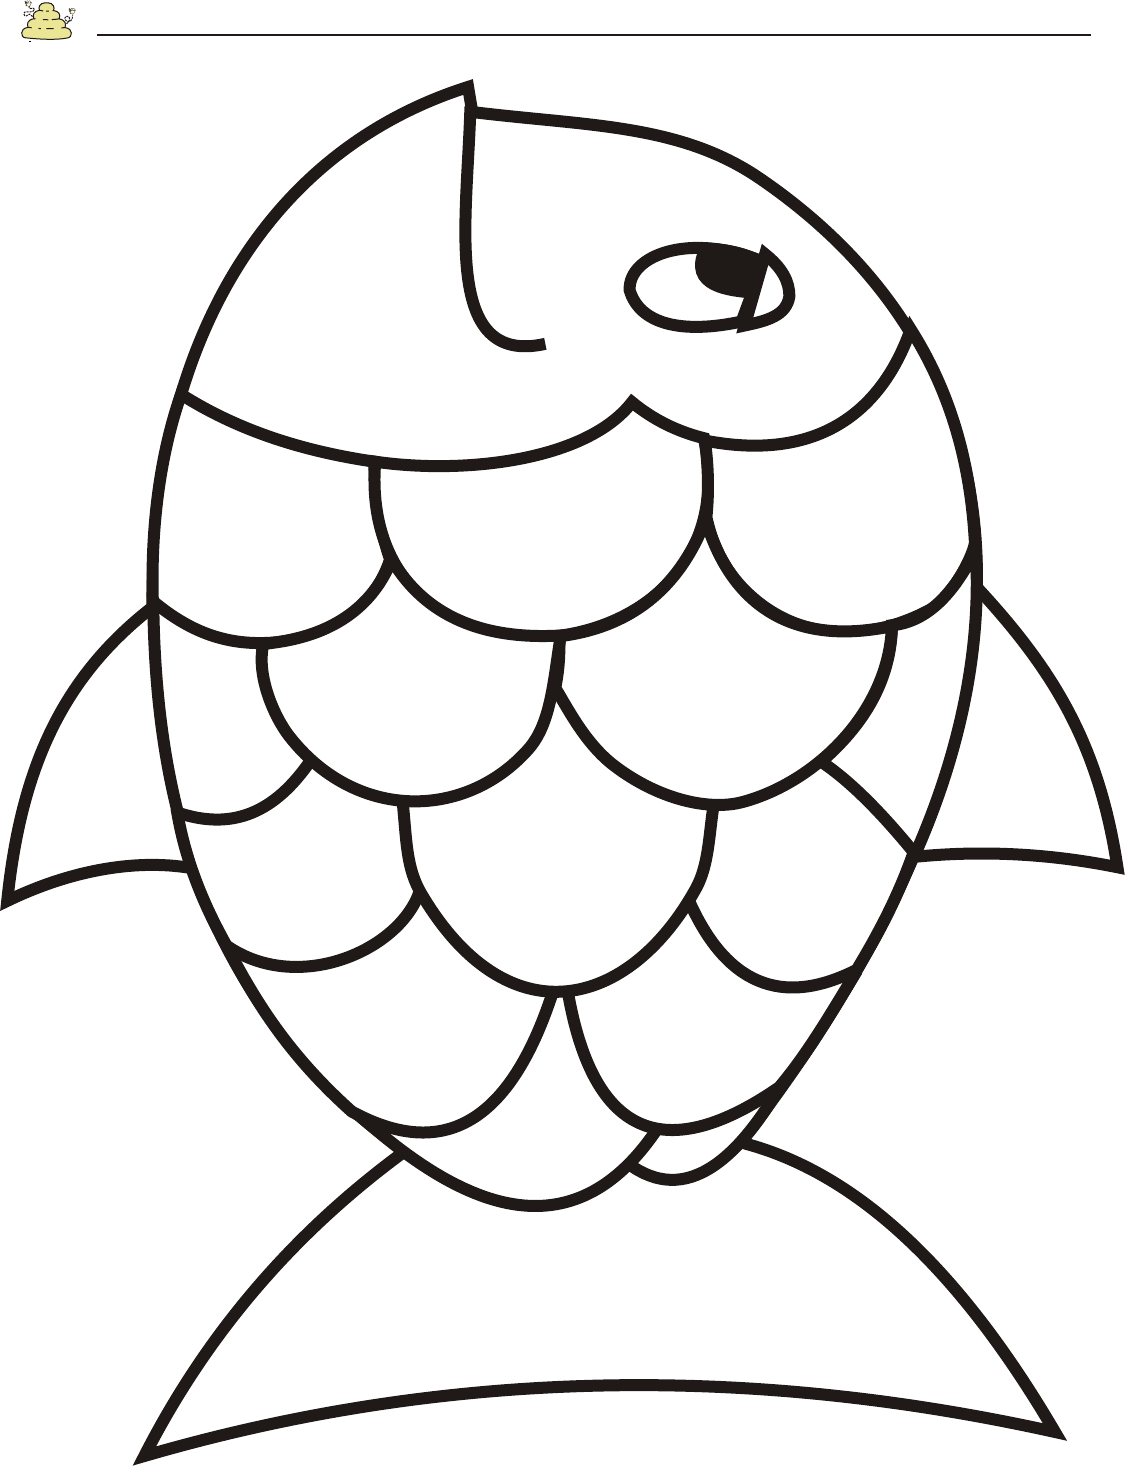 Free Rainbow Fish Template - Pdf | 2 Page(S) | Page 2 | Vbs - Free Printable Sea Creature Templates